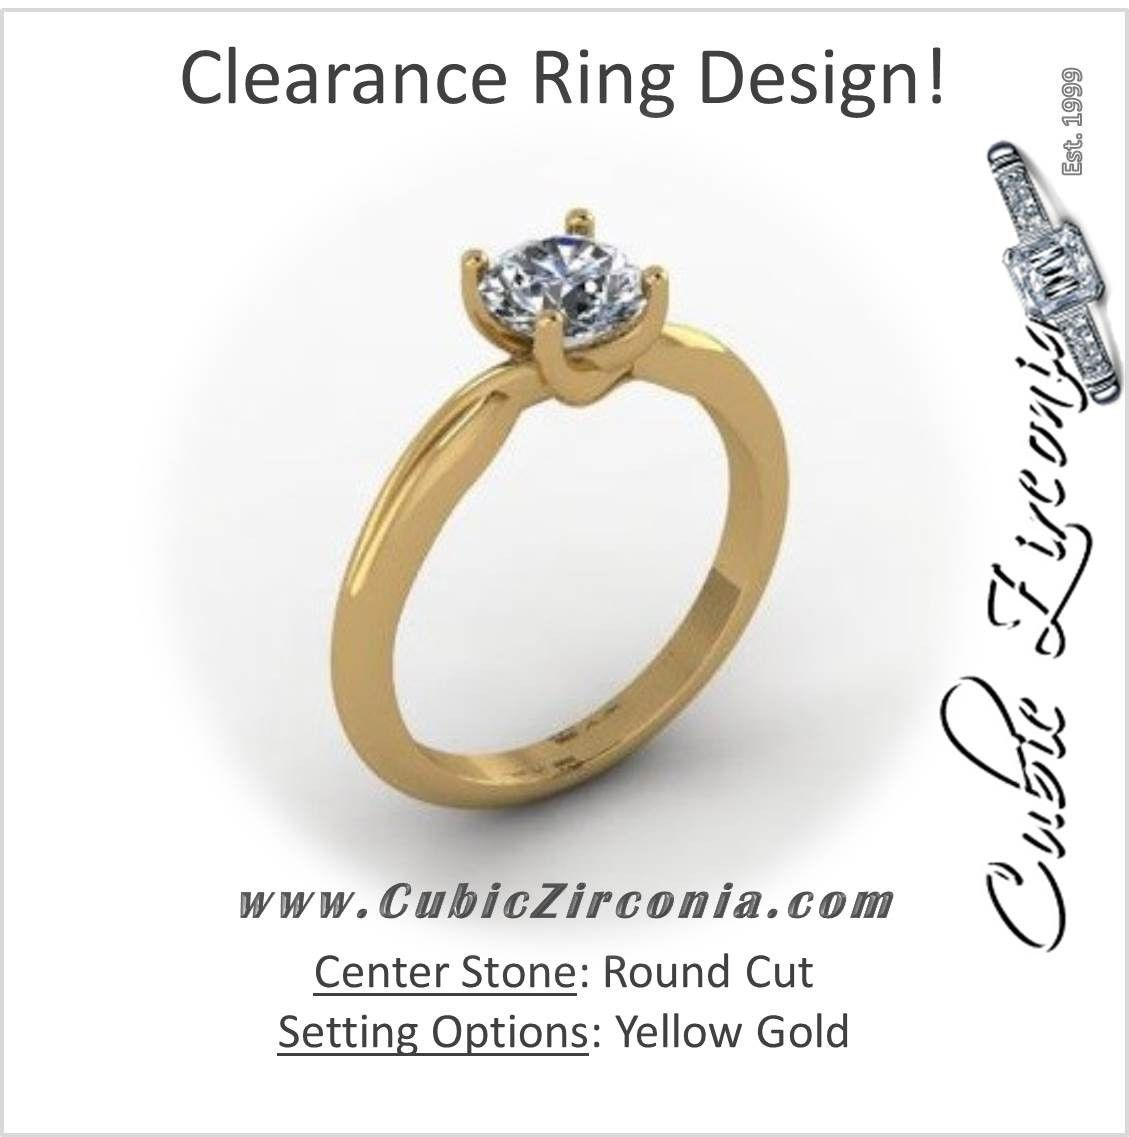 Clearance Cubic Zirconia Engagement Ring 075 Carat Round with